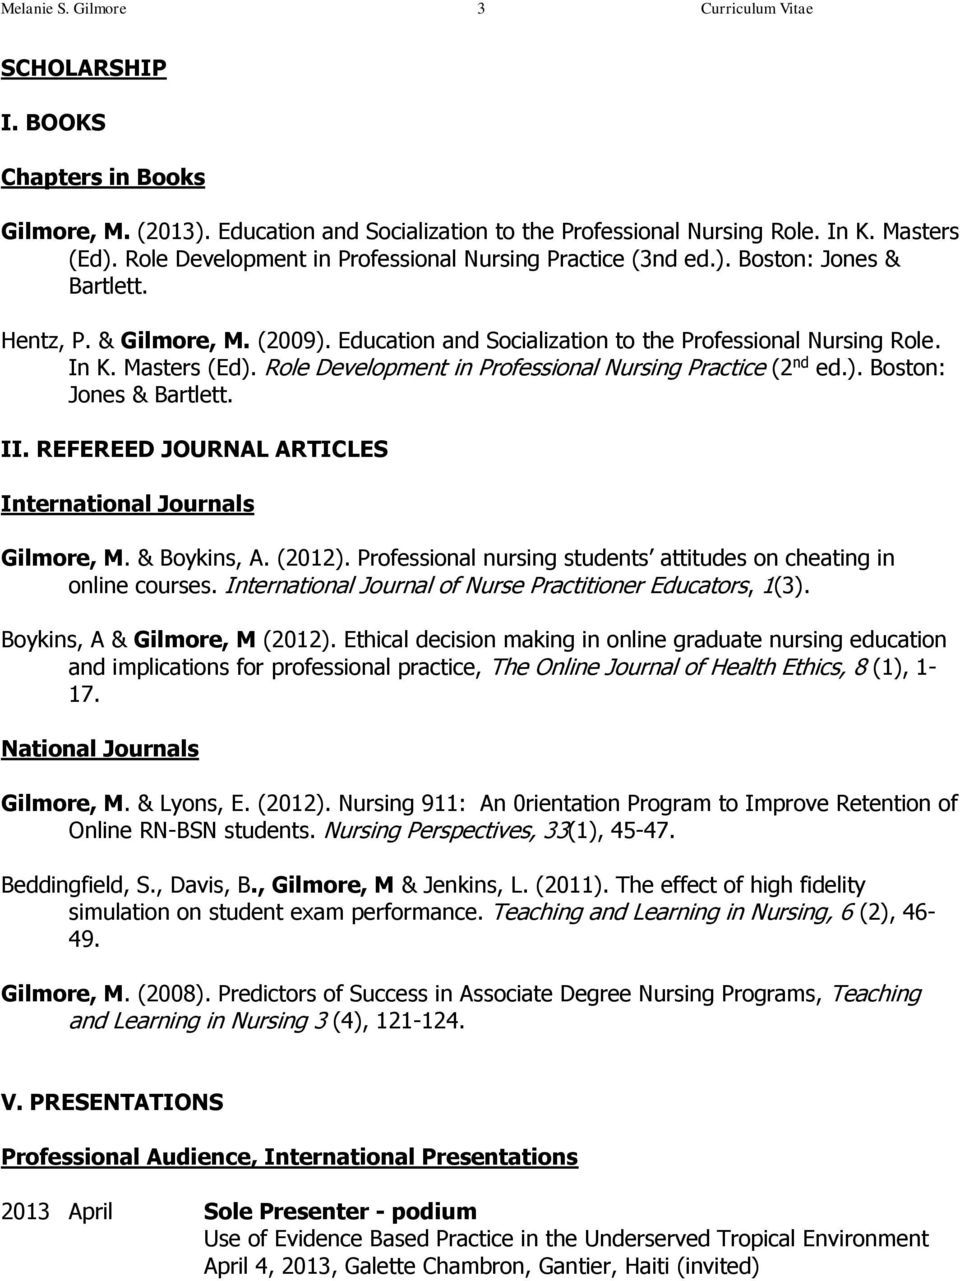 Role Development in Professional Nursing Practice (2 nd ed.). Boston: Jones & Bartlett. II. REFEREED JOURNAL ARTICLES International Journals Gilmore, M. & Boykins, A. (2012).